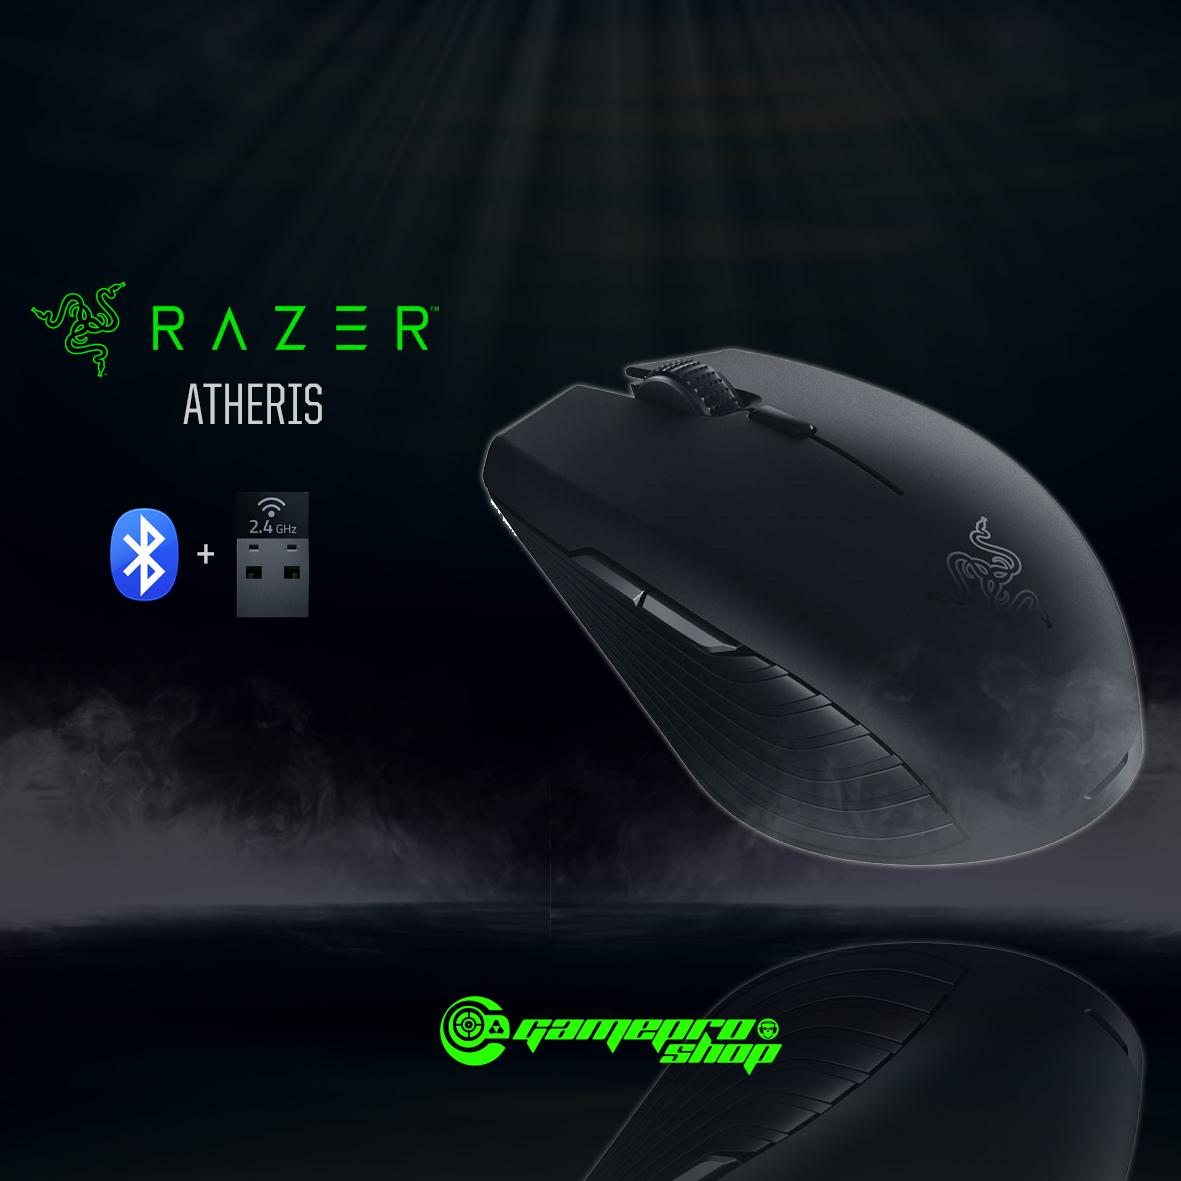 Top Rated Razer Atheris Gaming Wireless Bluetooth Mouse Gss Promo